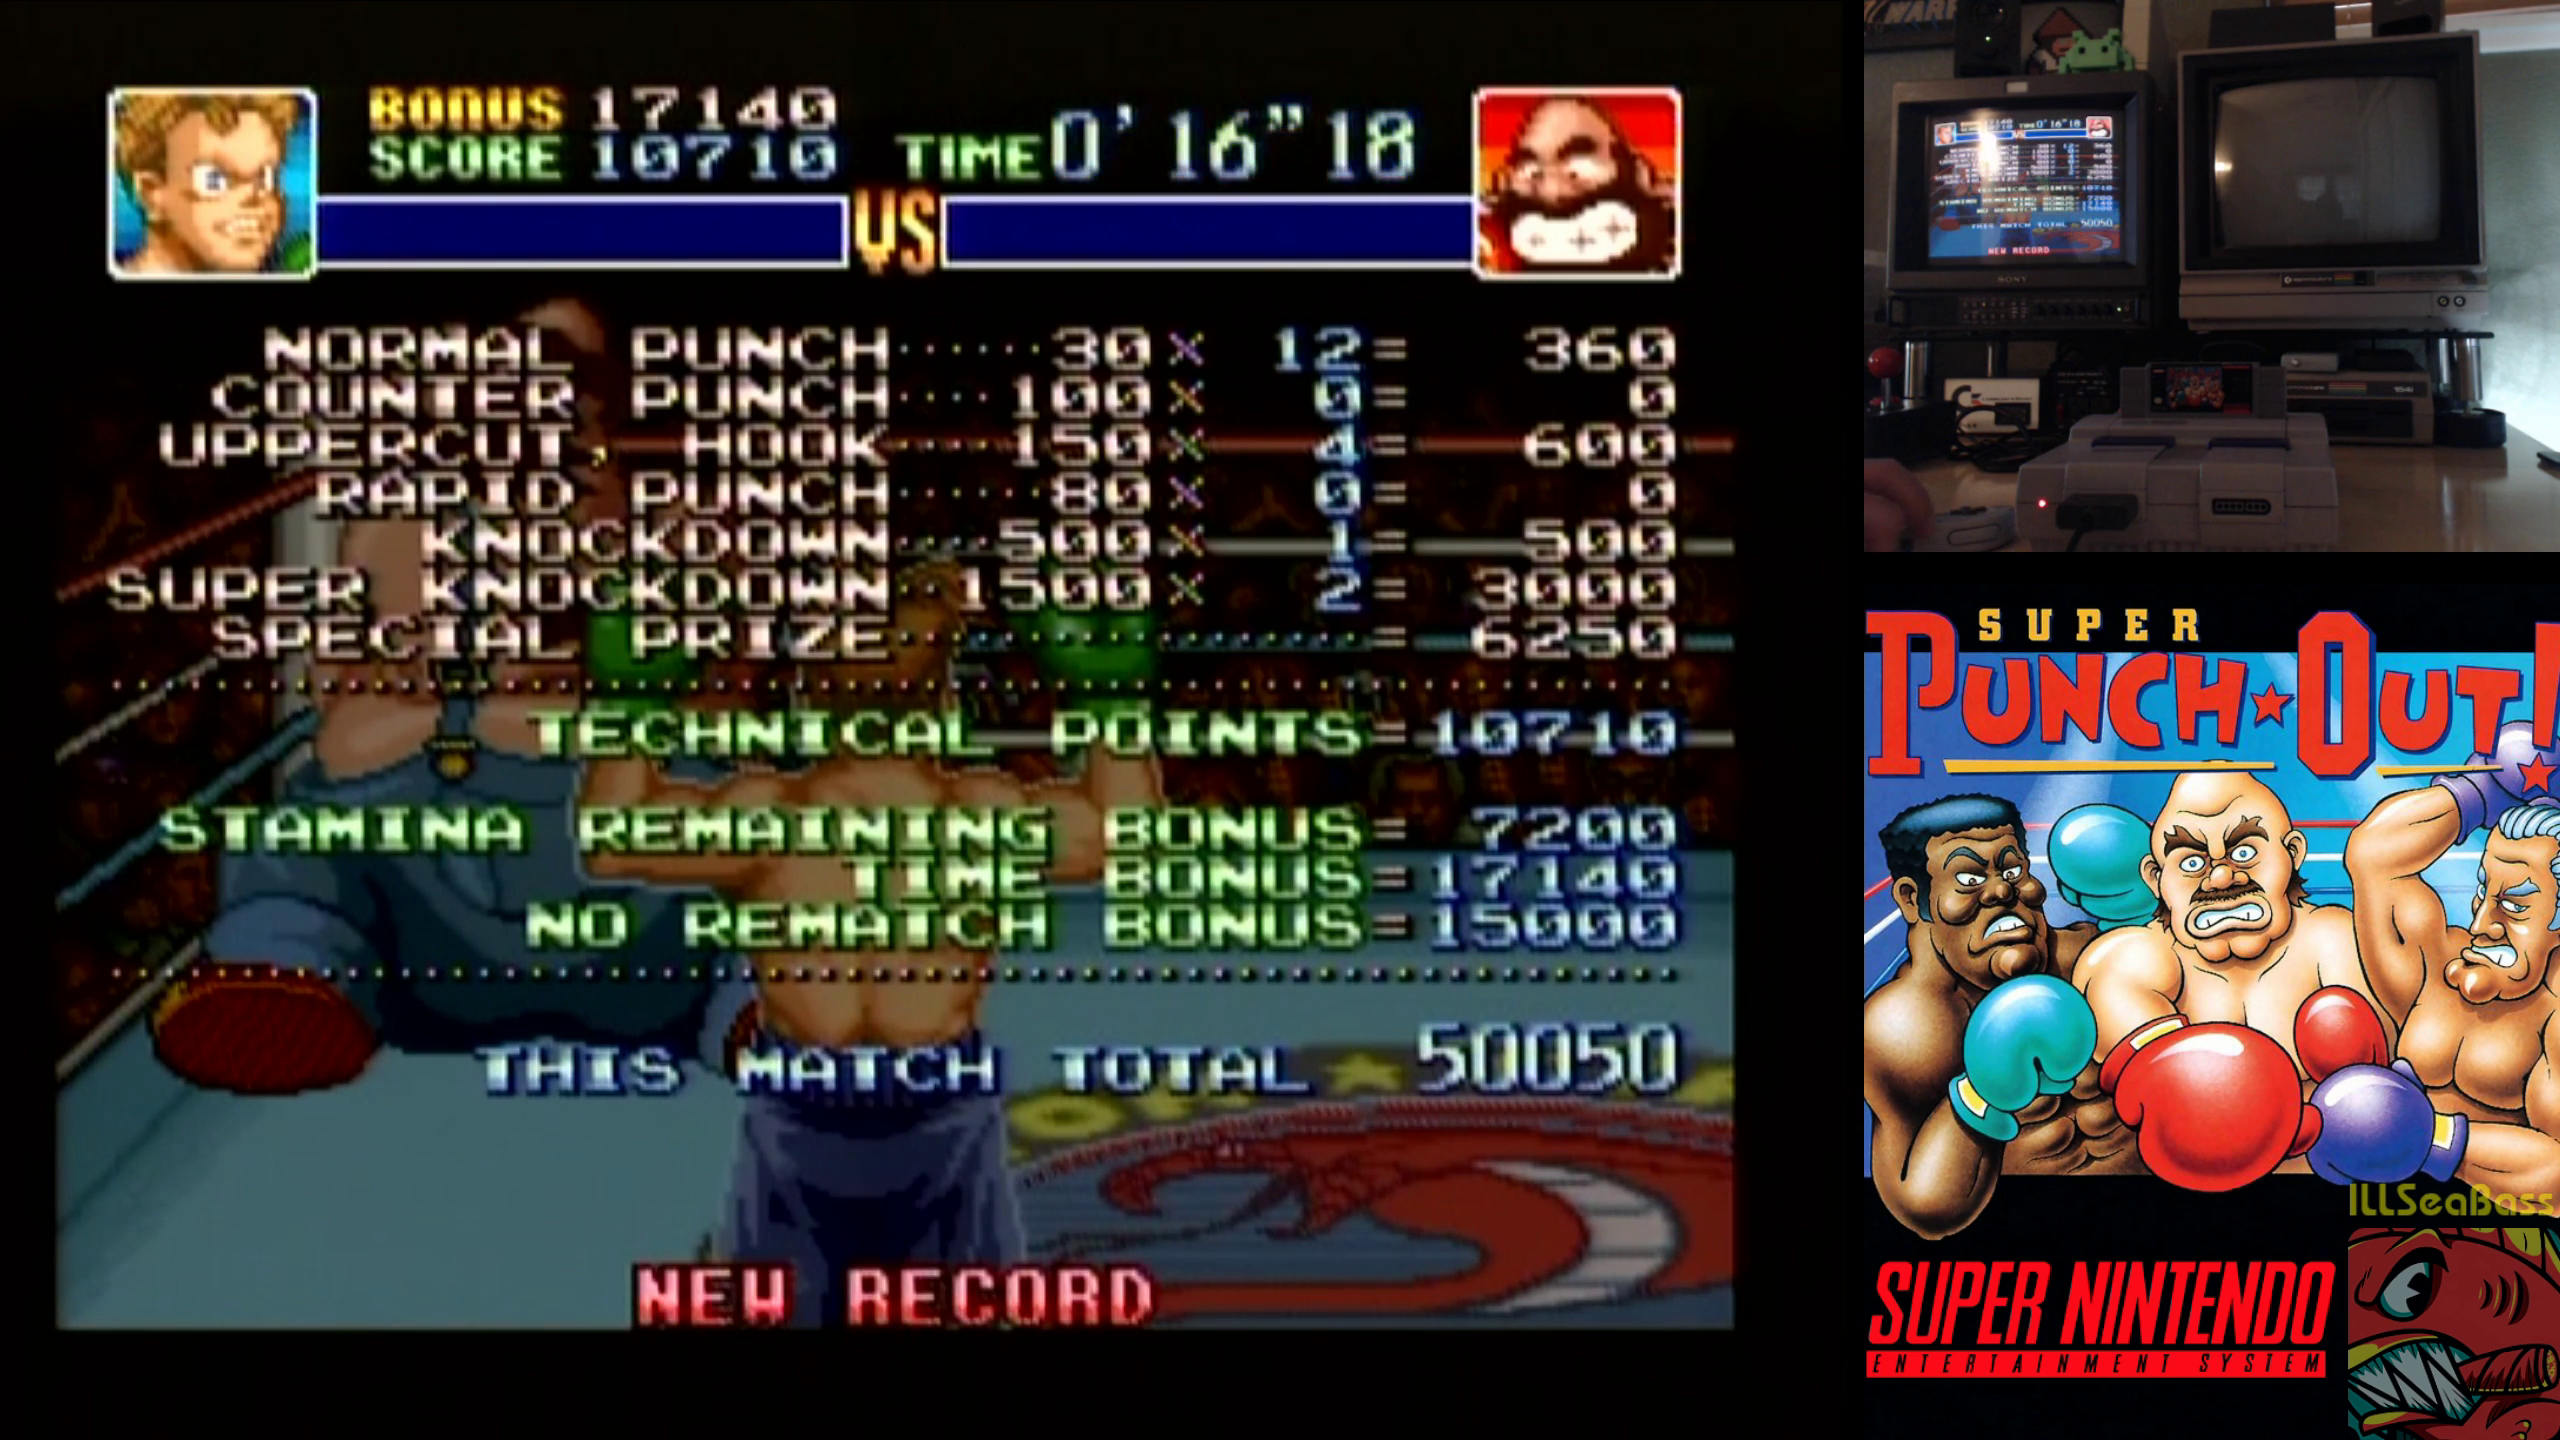 ILLSeaBass: Super Punch-Out!! [Bear Hugger] (SNES/Super Famicom) 50,050 points on 2018-11-17 11:35:14